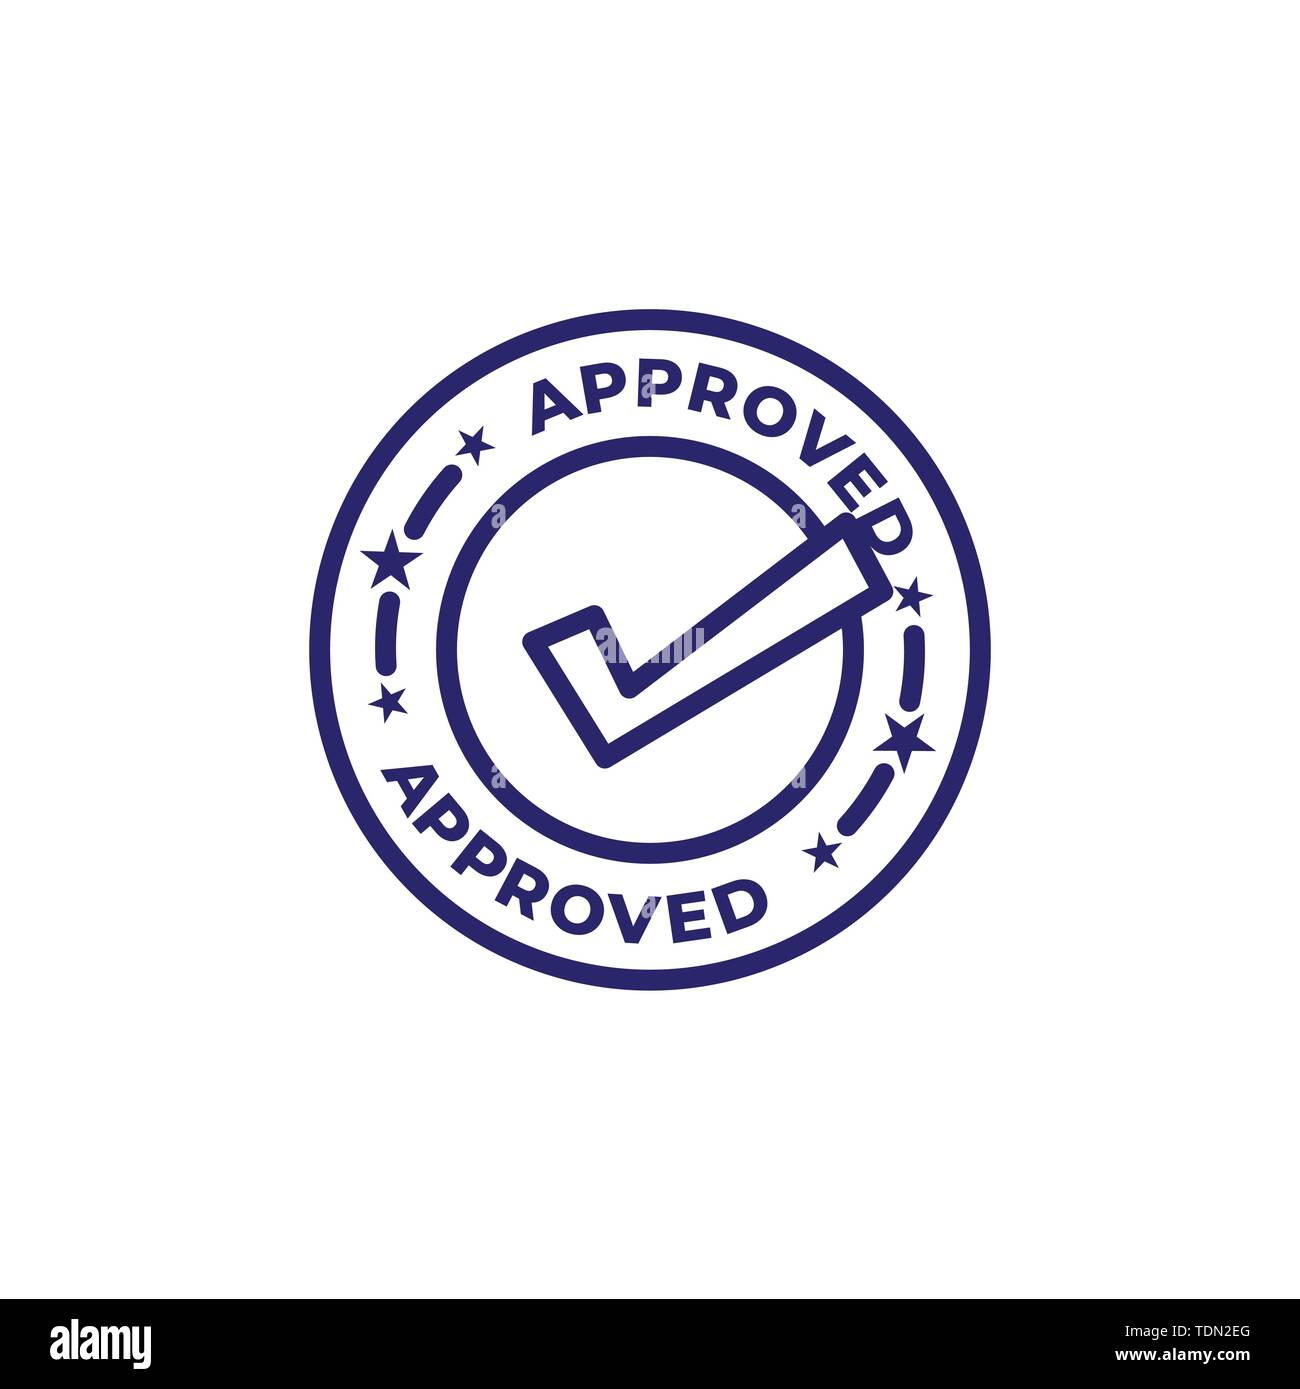 Approval and Signature Icon w approved imagery - to show someone's given the go ahead - Stock Image